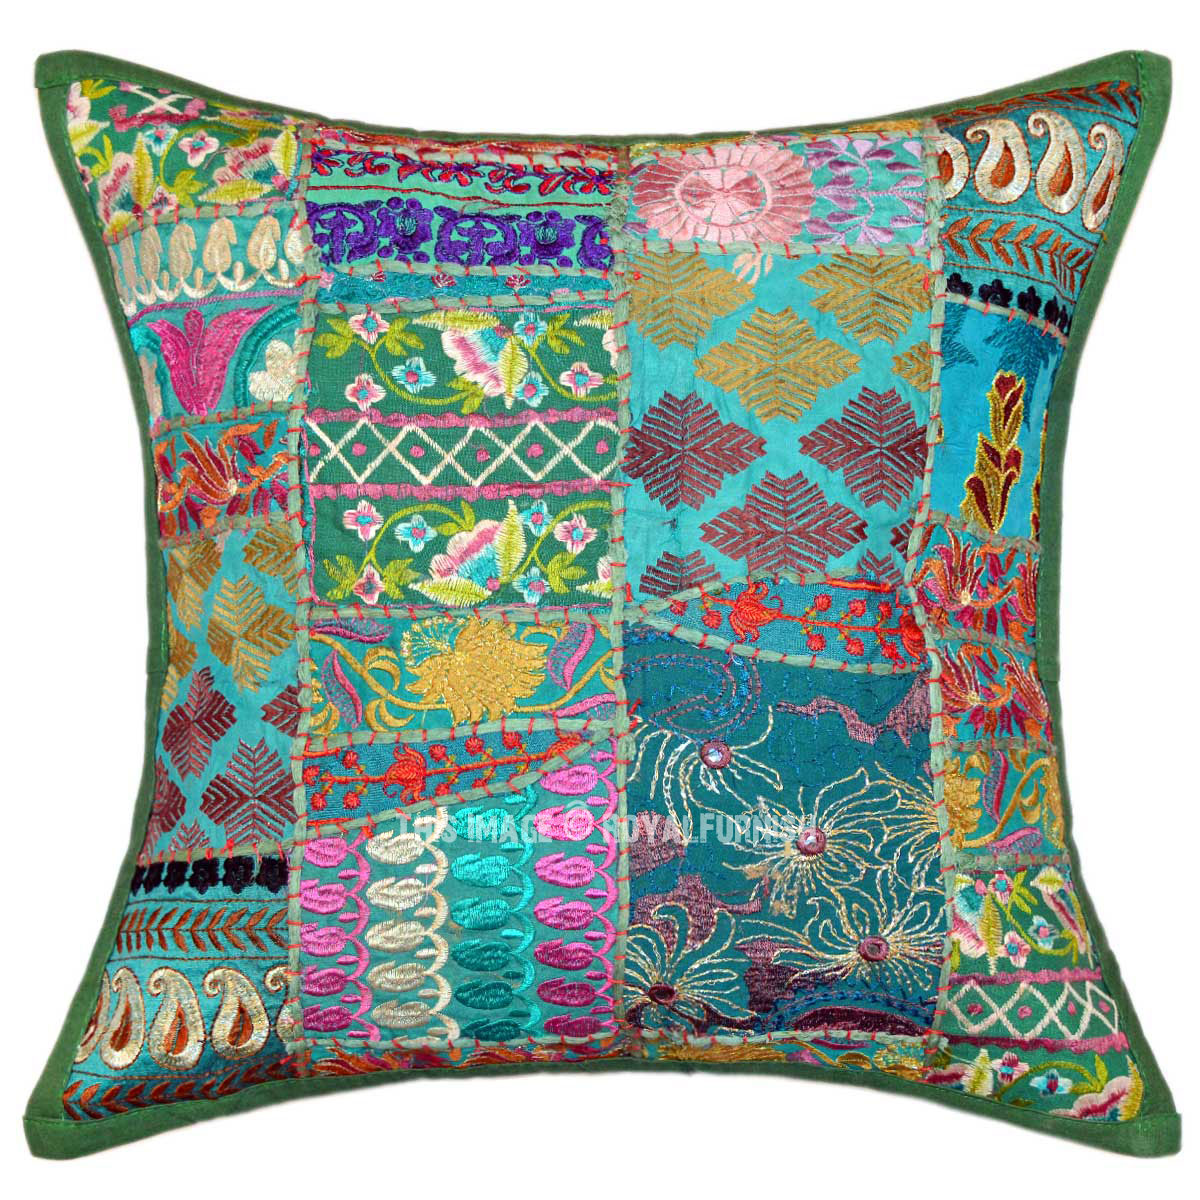 Green 18X18 Unique Patchwork Decorative Throw Pillow Case